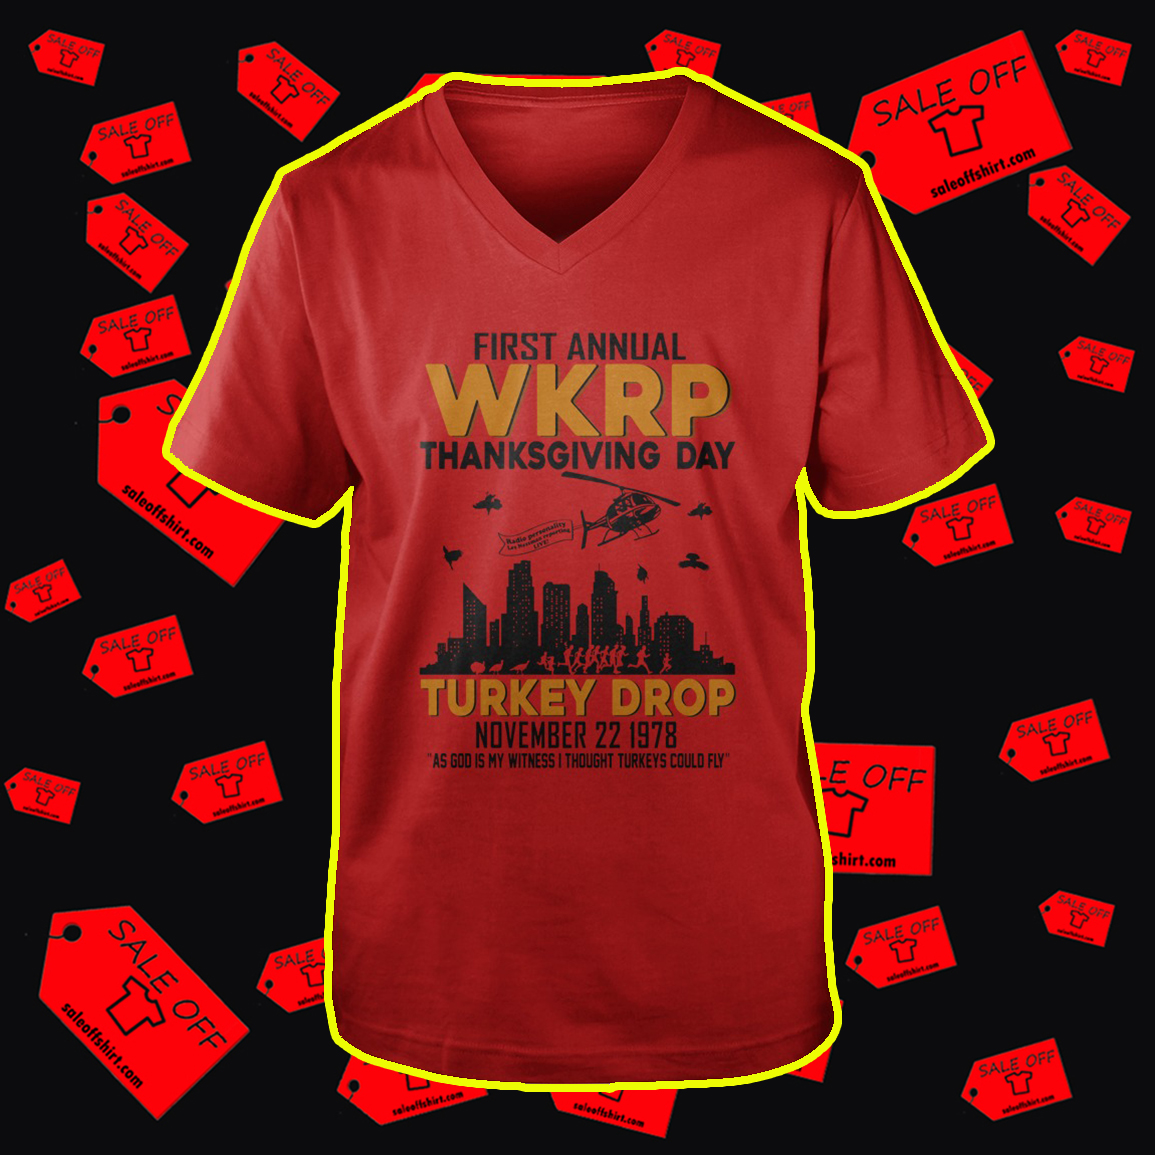 First annual WKRP thanksgiving day Turkey Drop v-neck